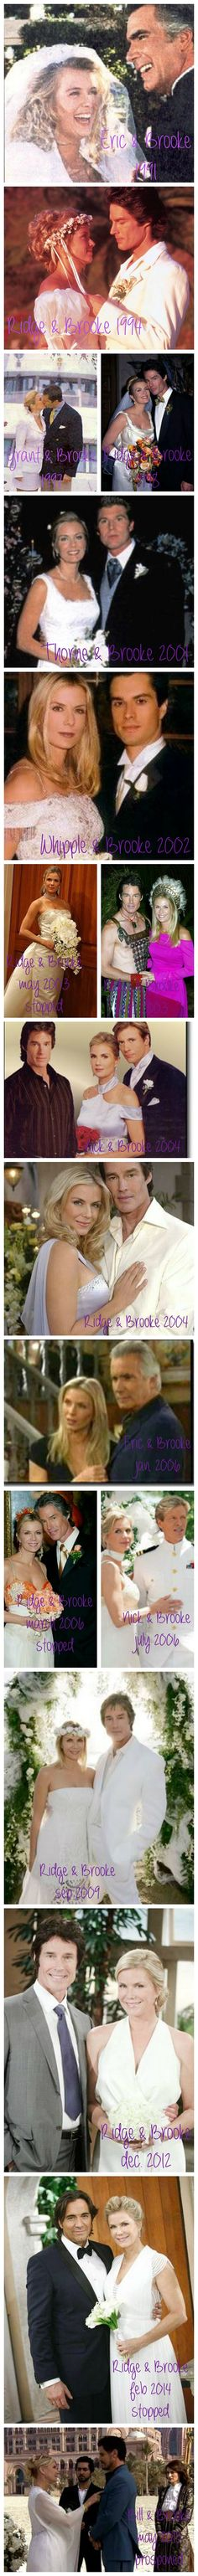 Brooke's weddings and 'almost-weddings'